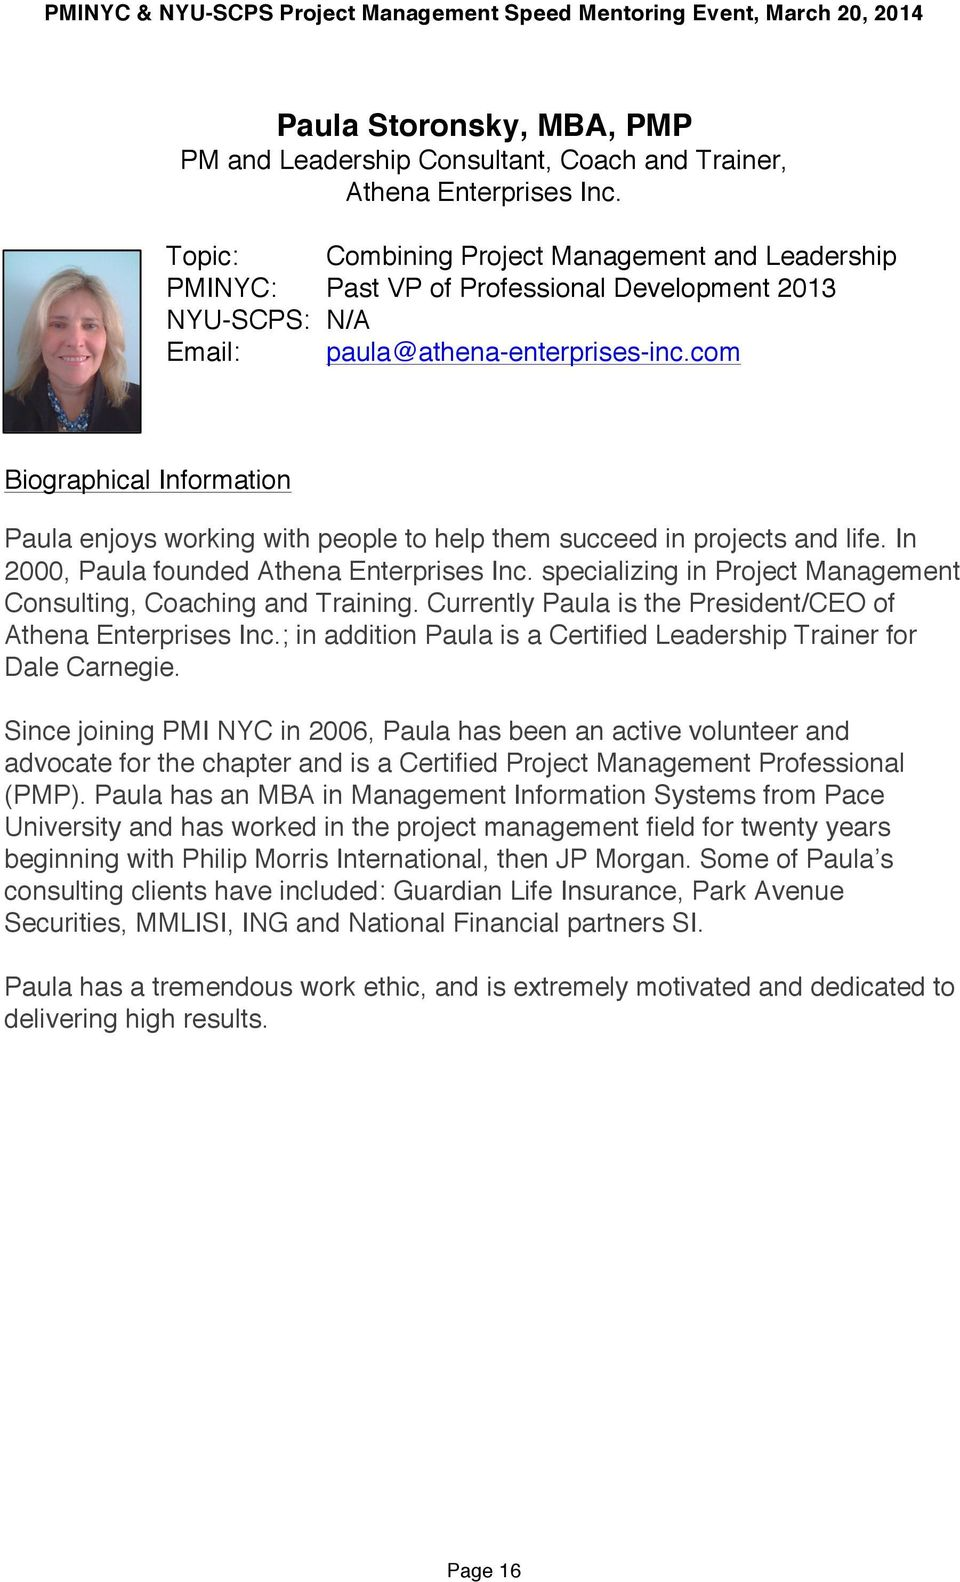 Project Management Speed Mentoring Event Pdf Free Download